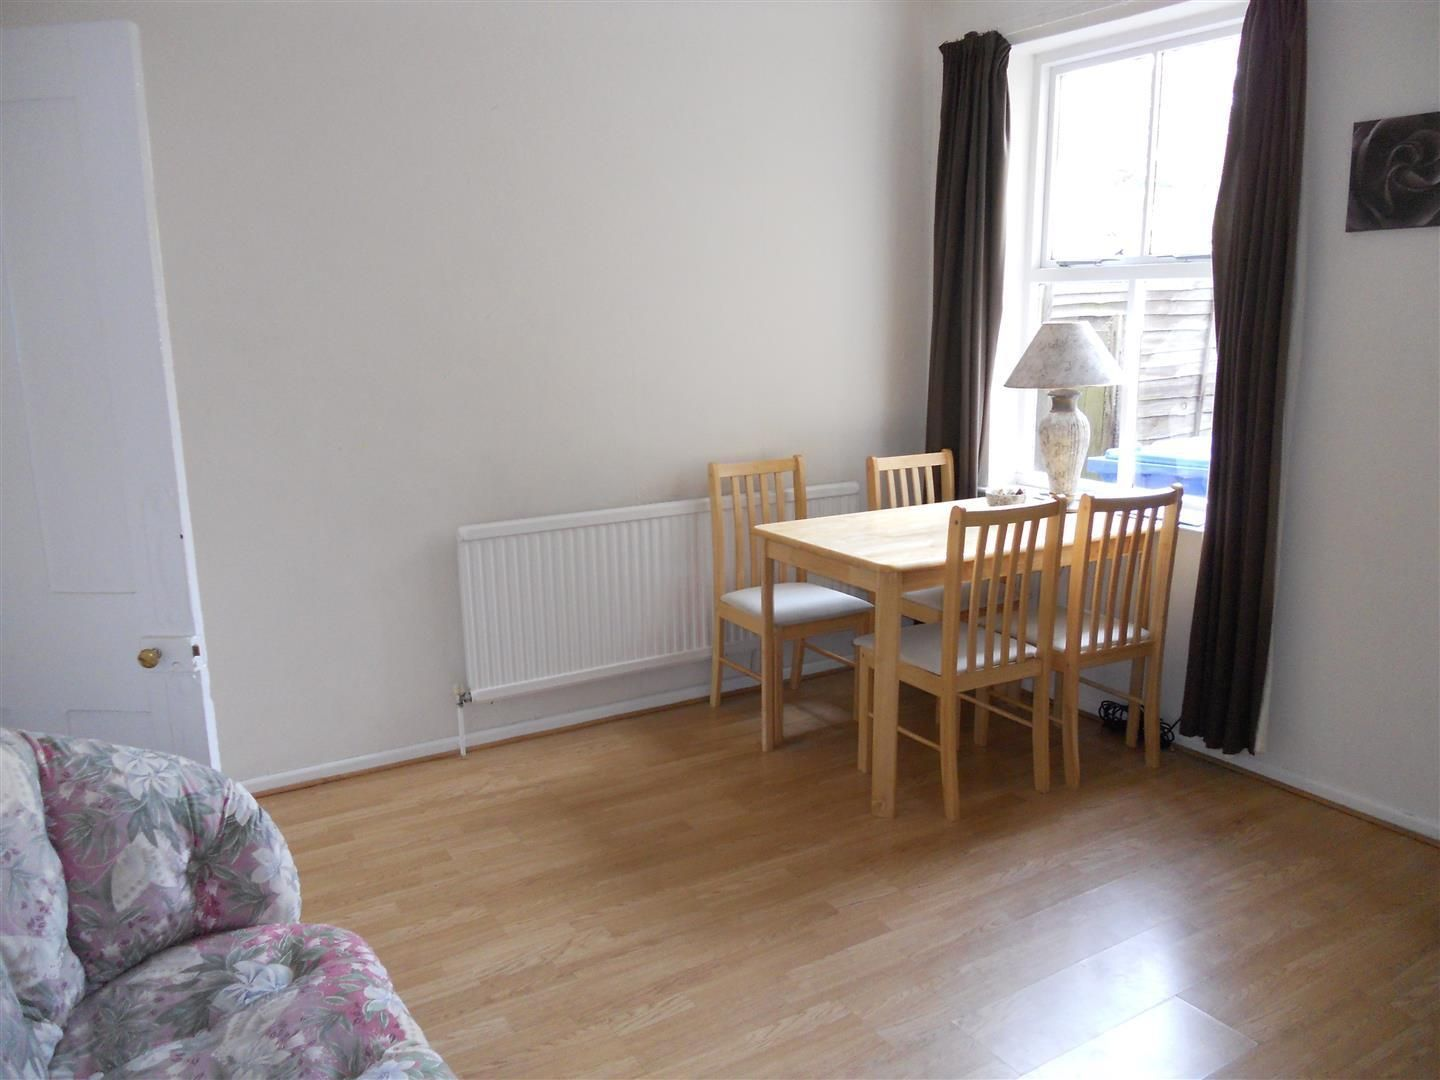 Property photo 1 of 7. Dining Room